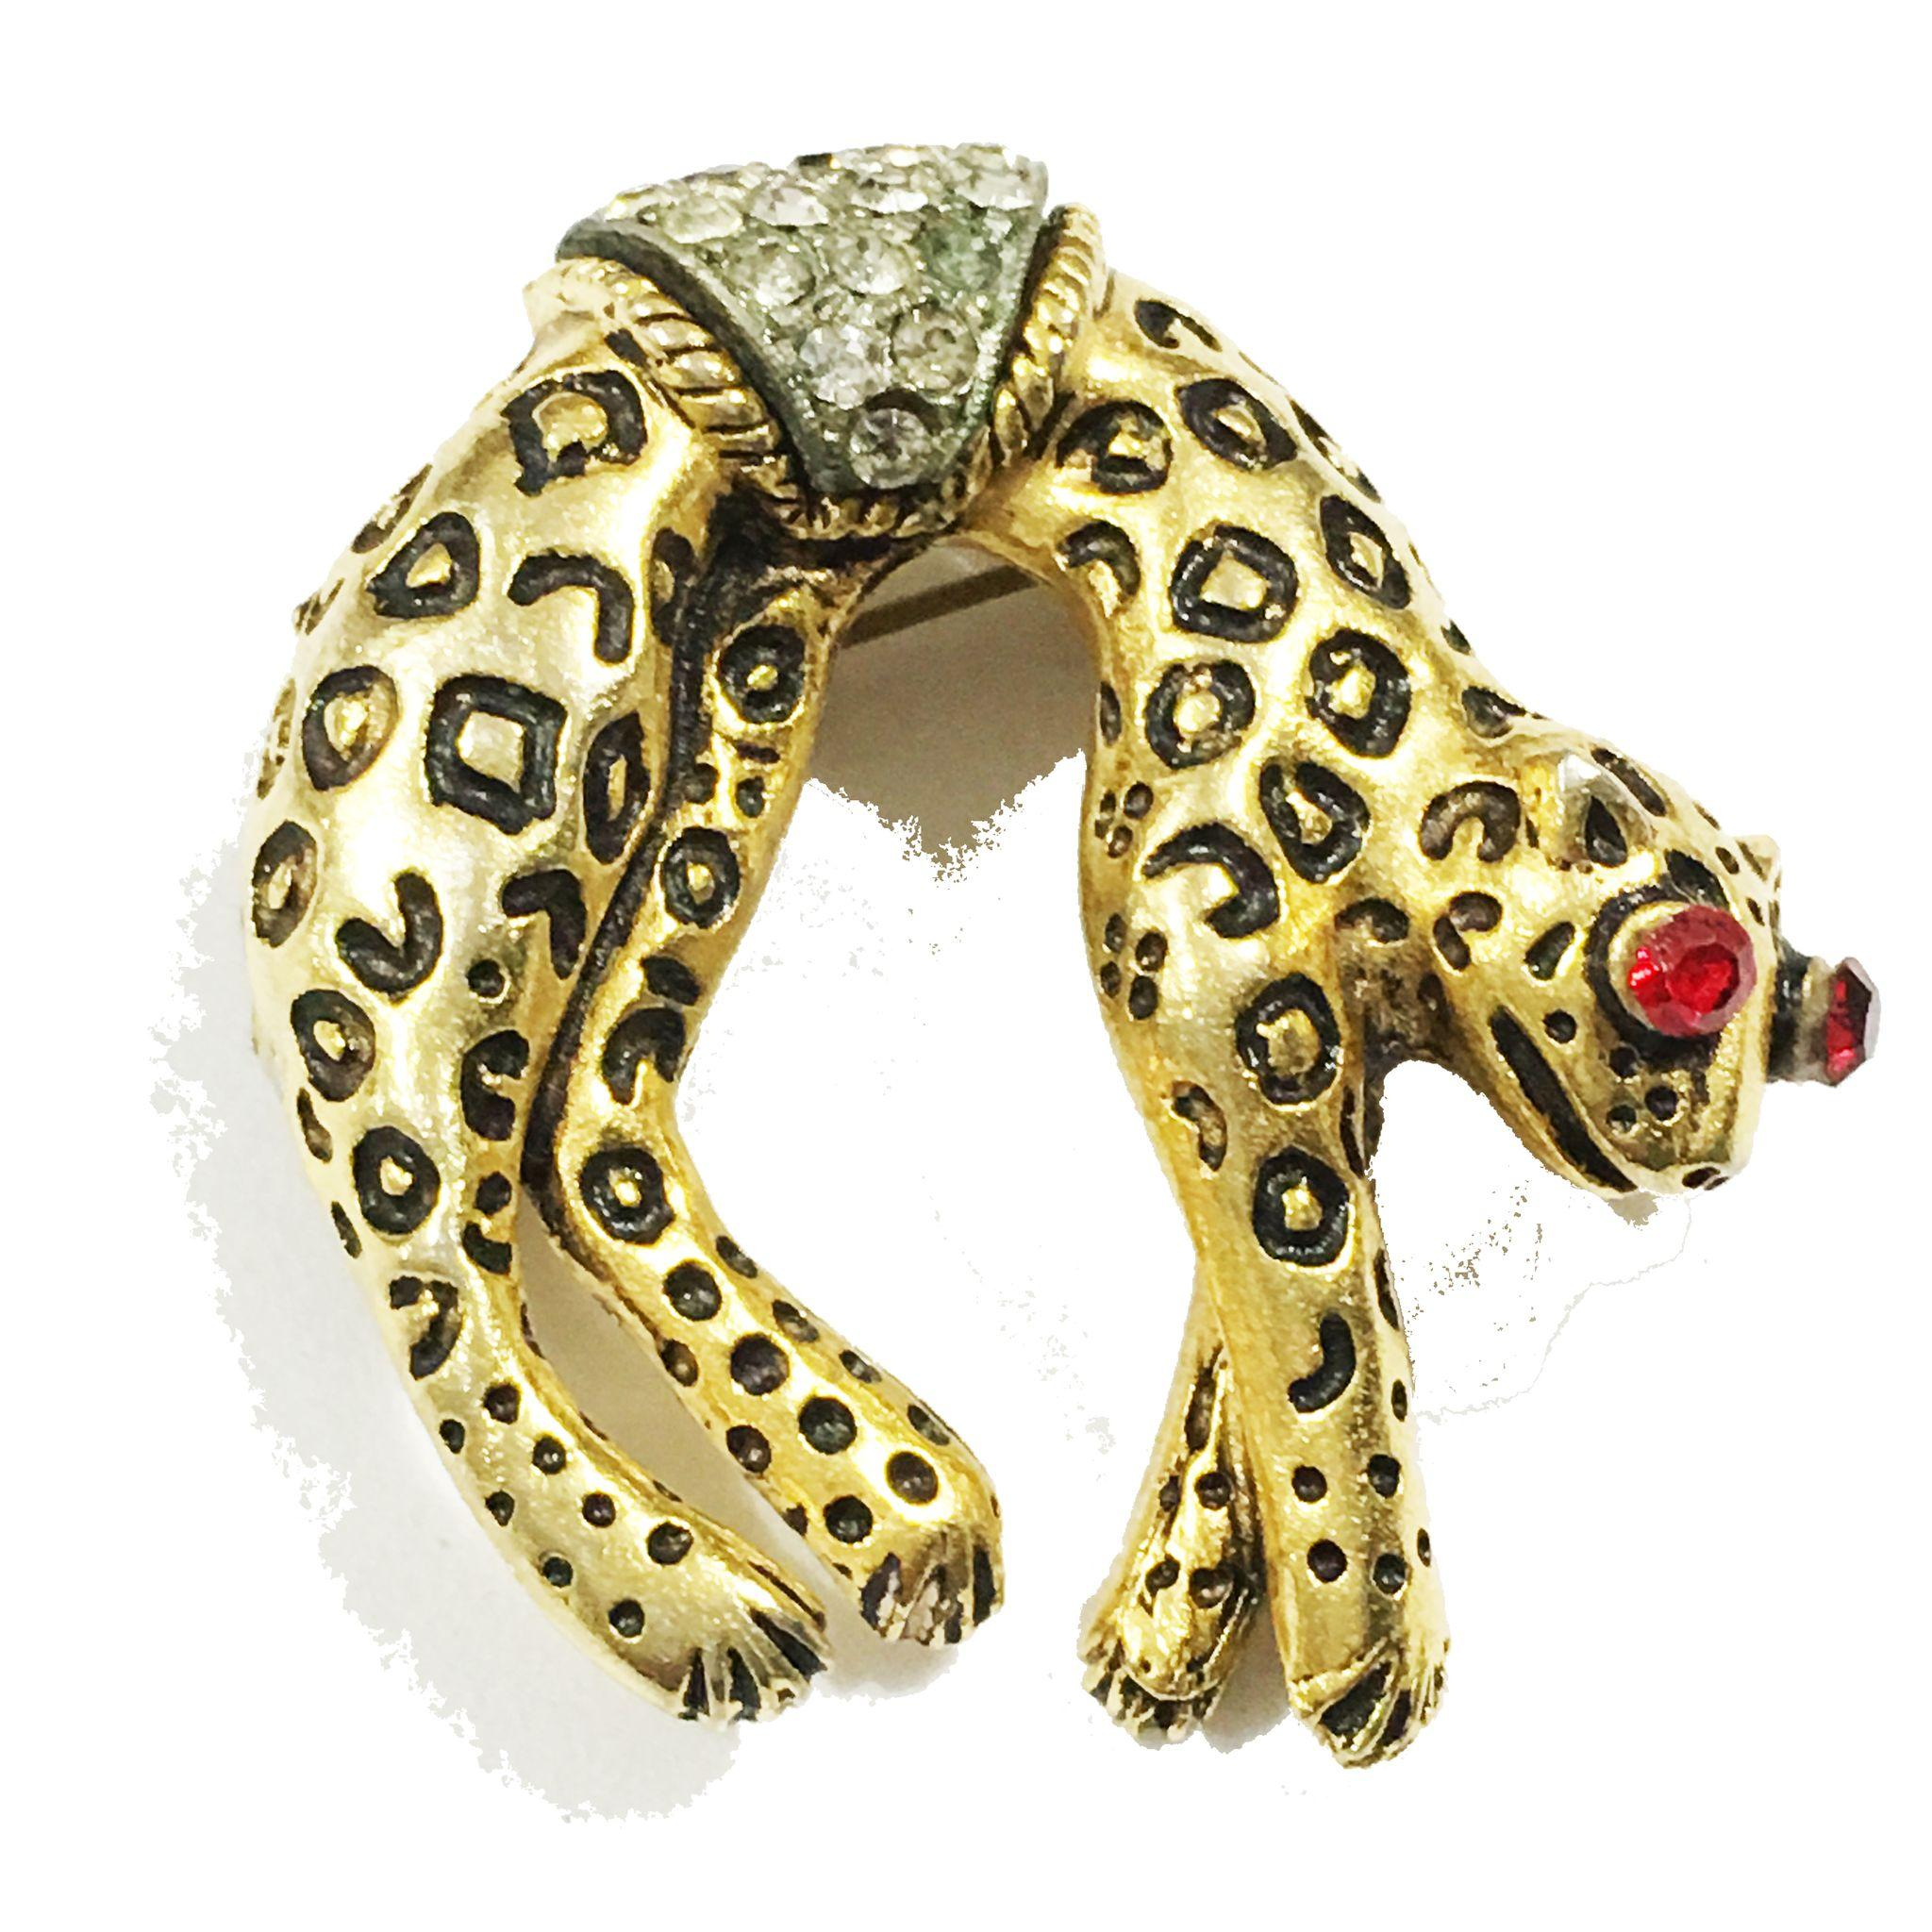 FLORENZA Signed Hanging Jaquar Brooch with Red Rhinestone Eyes